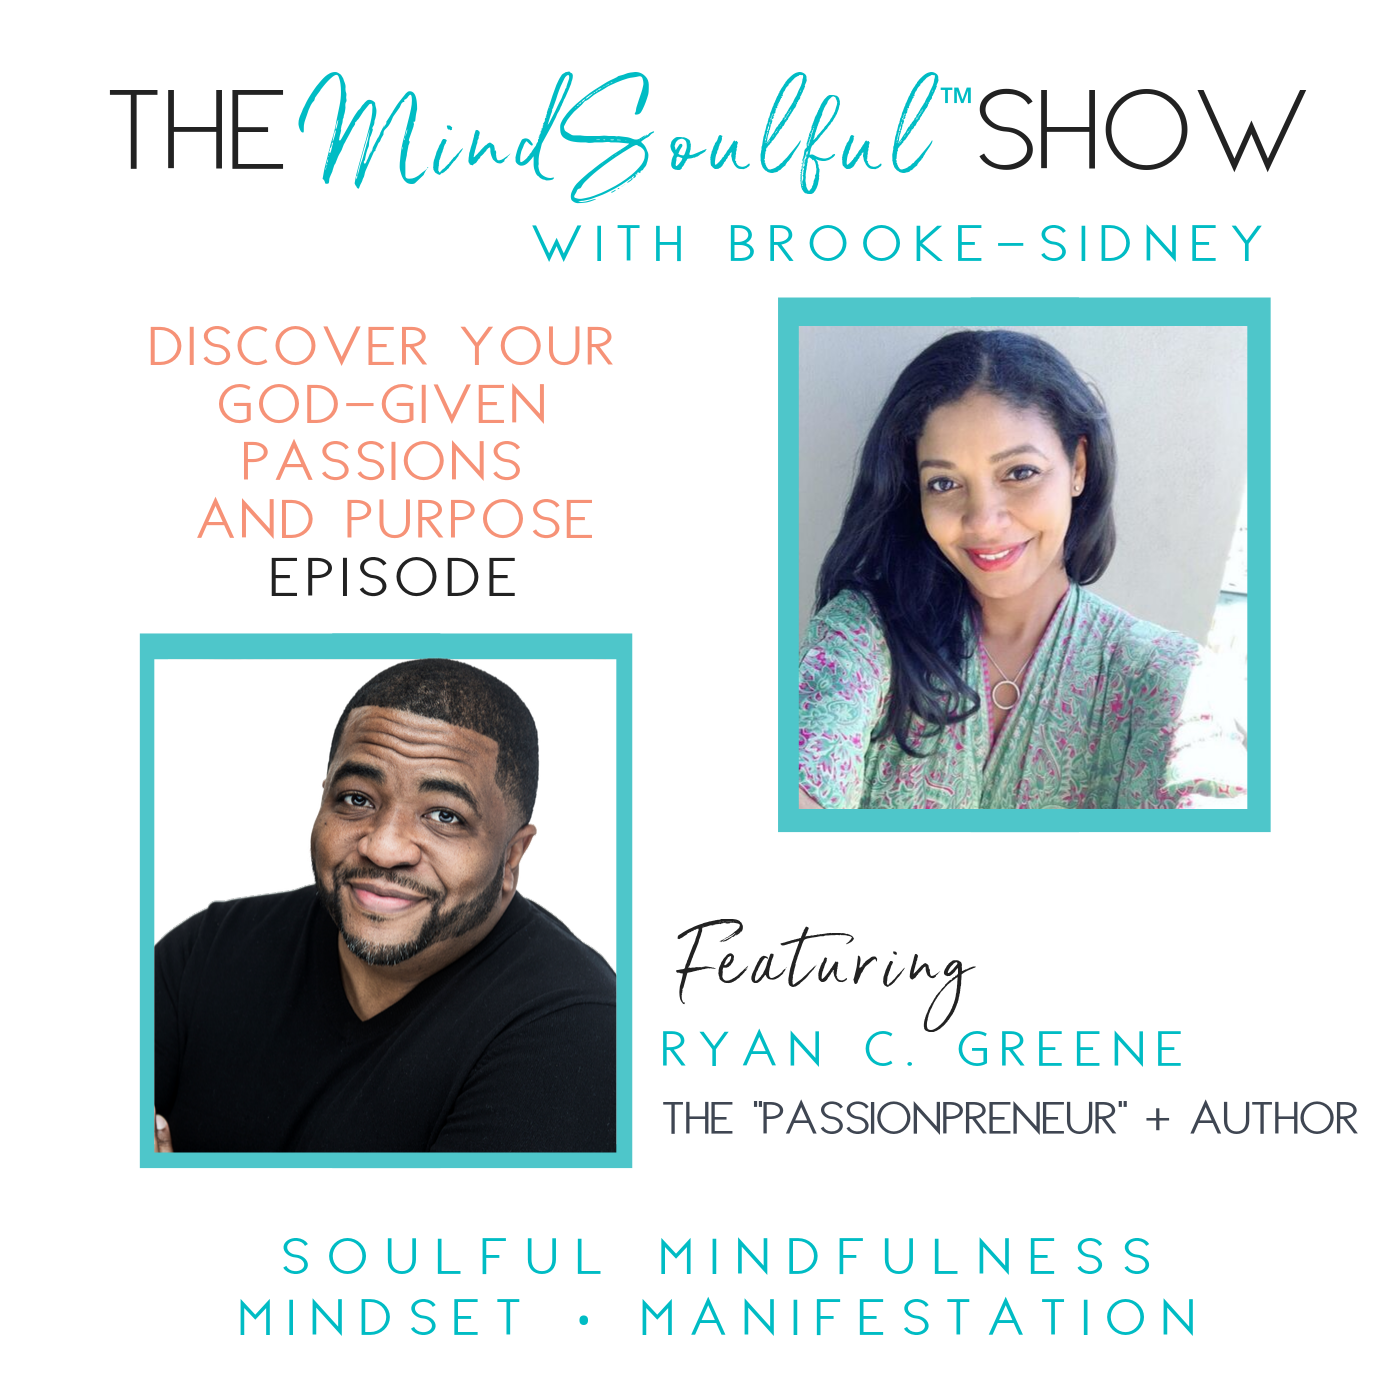 The MindSoulful Show with RYAN C GREENE-2.png